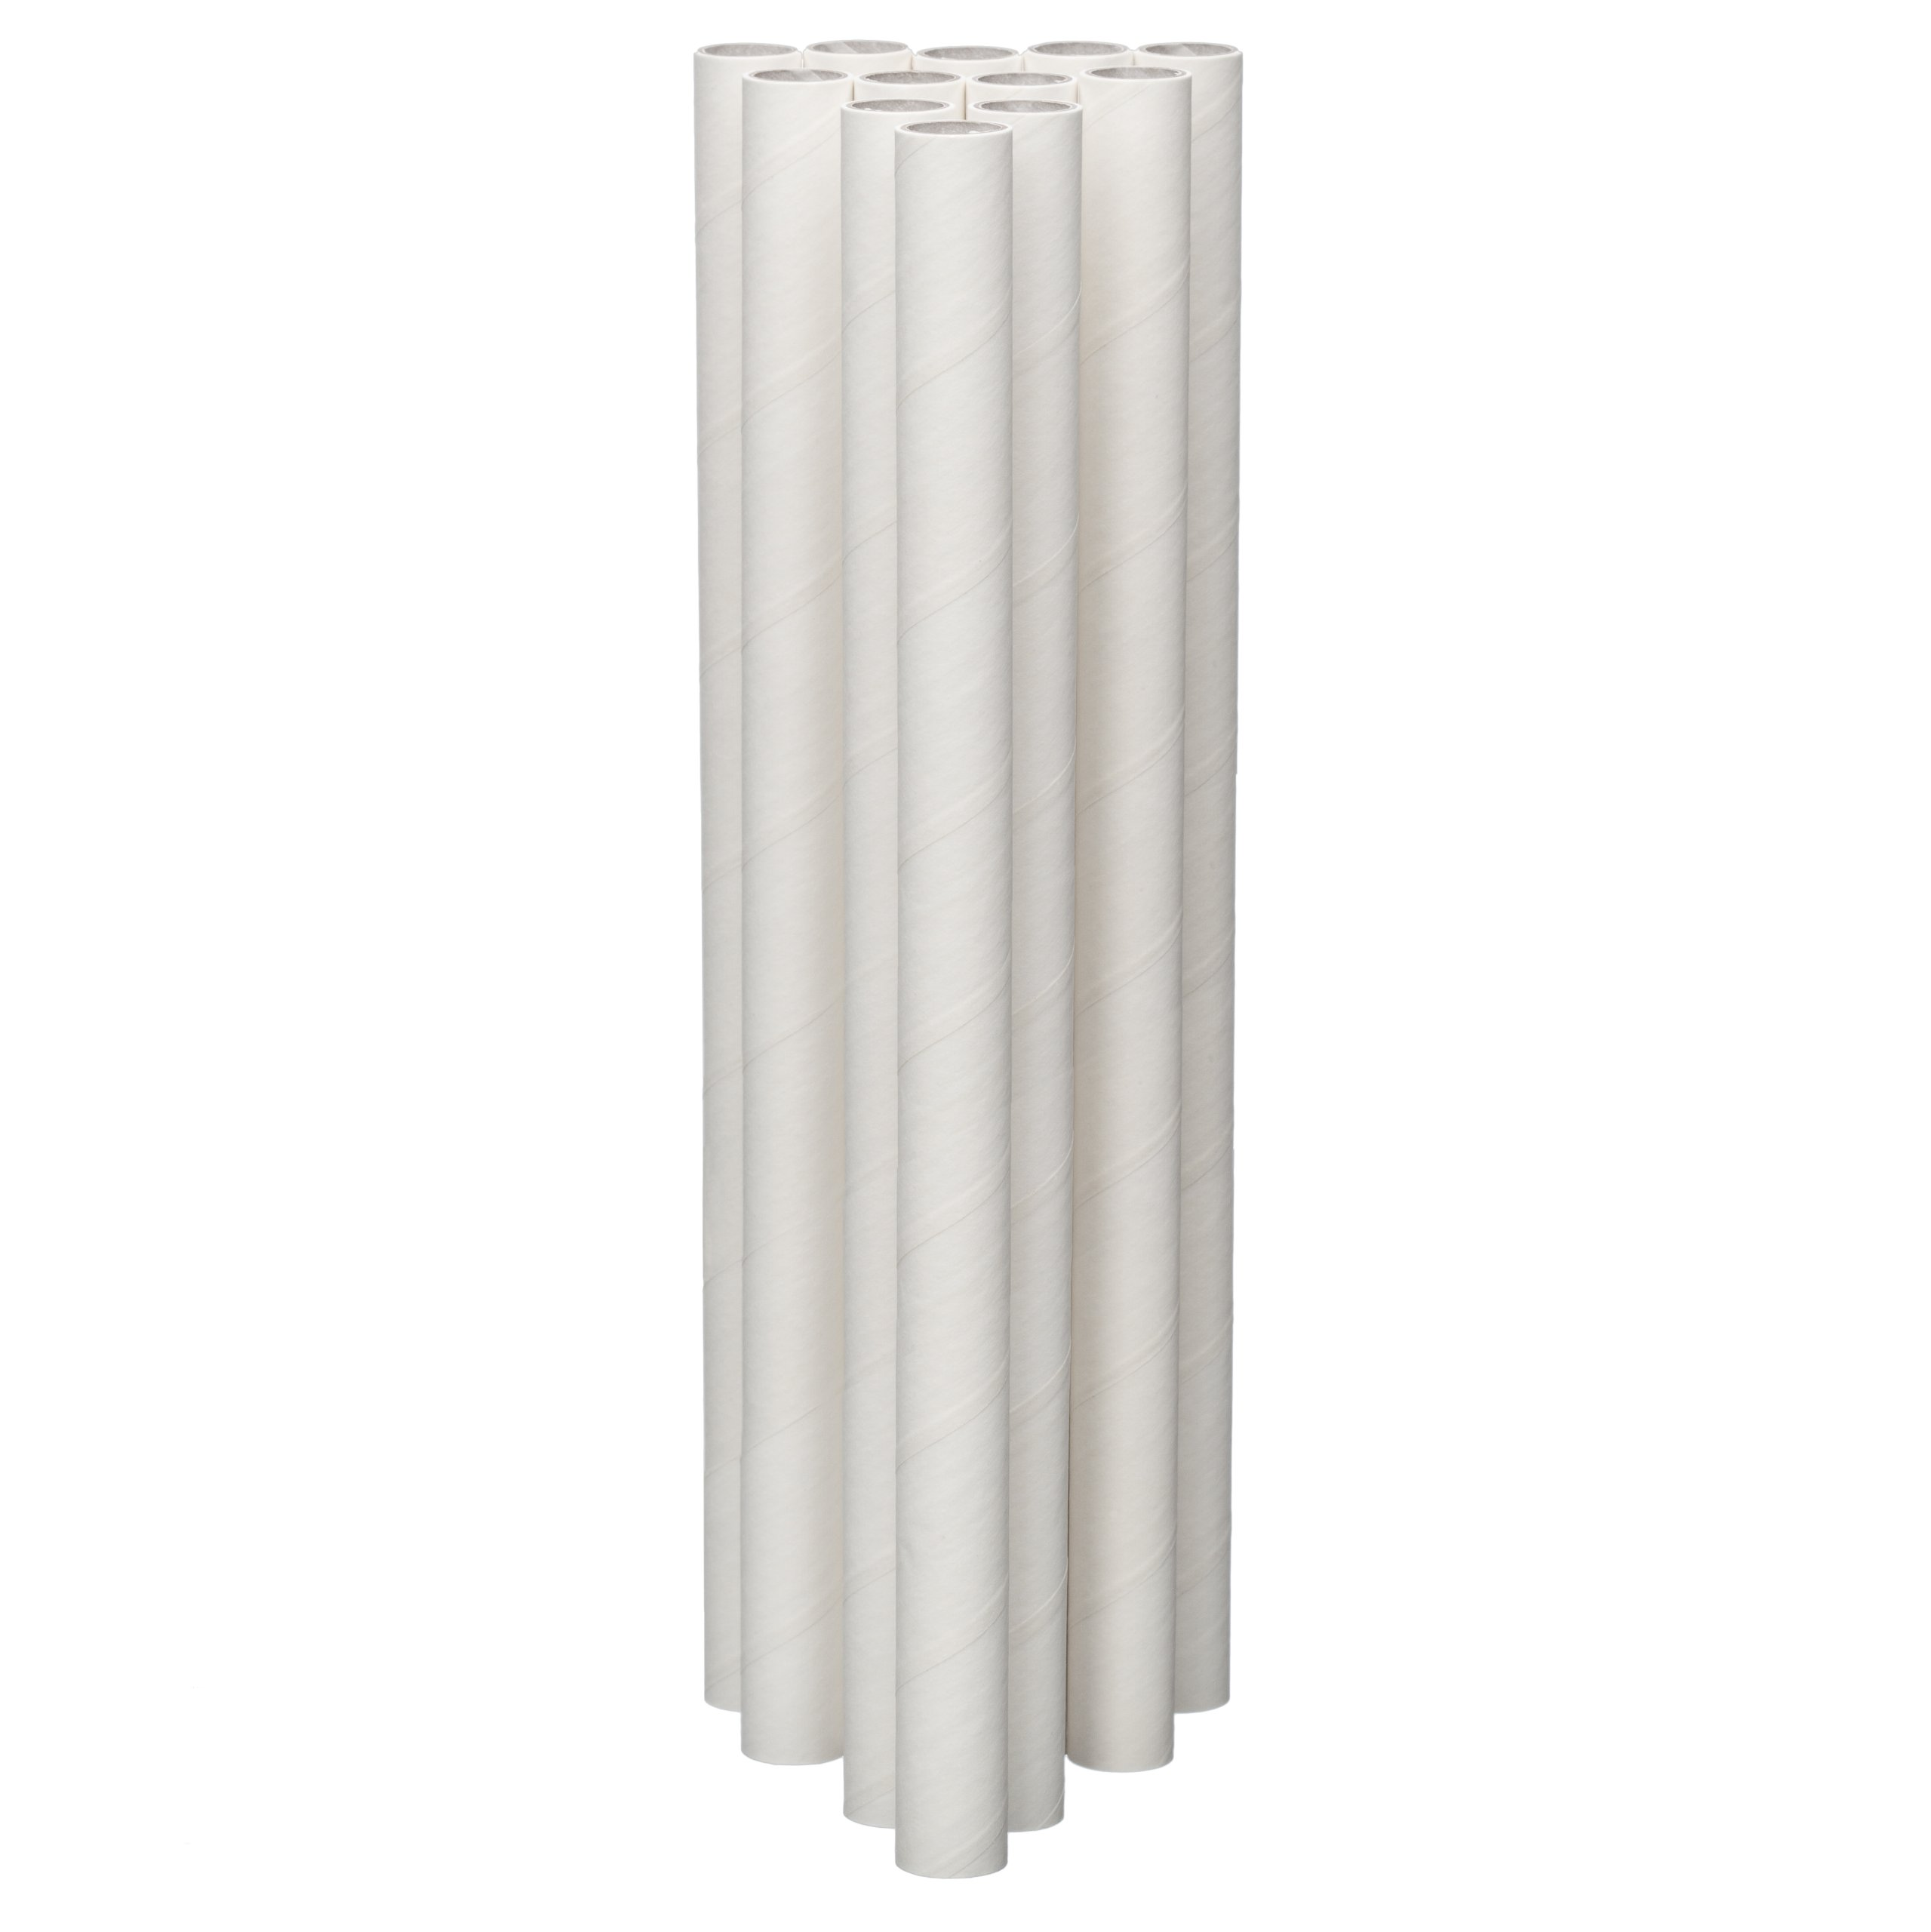 Lady Mary/Ateco 12-Inch Parchment Coated Paperboard Dowels, 12-Pack by Ateco